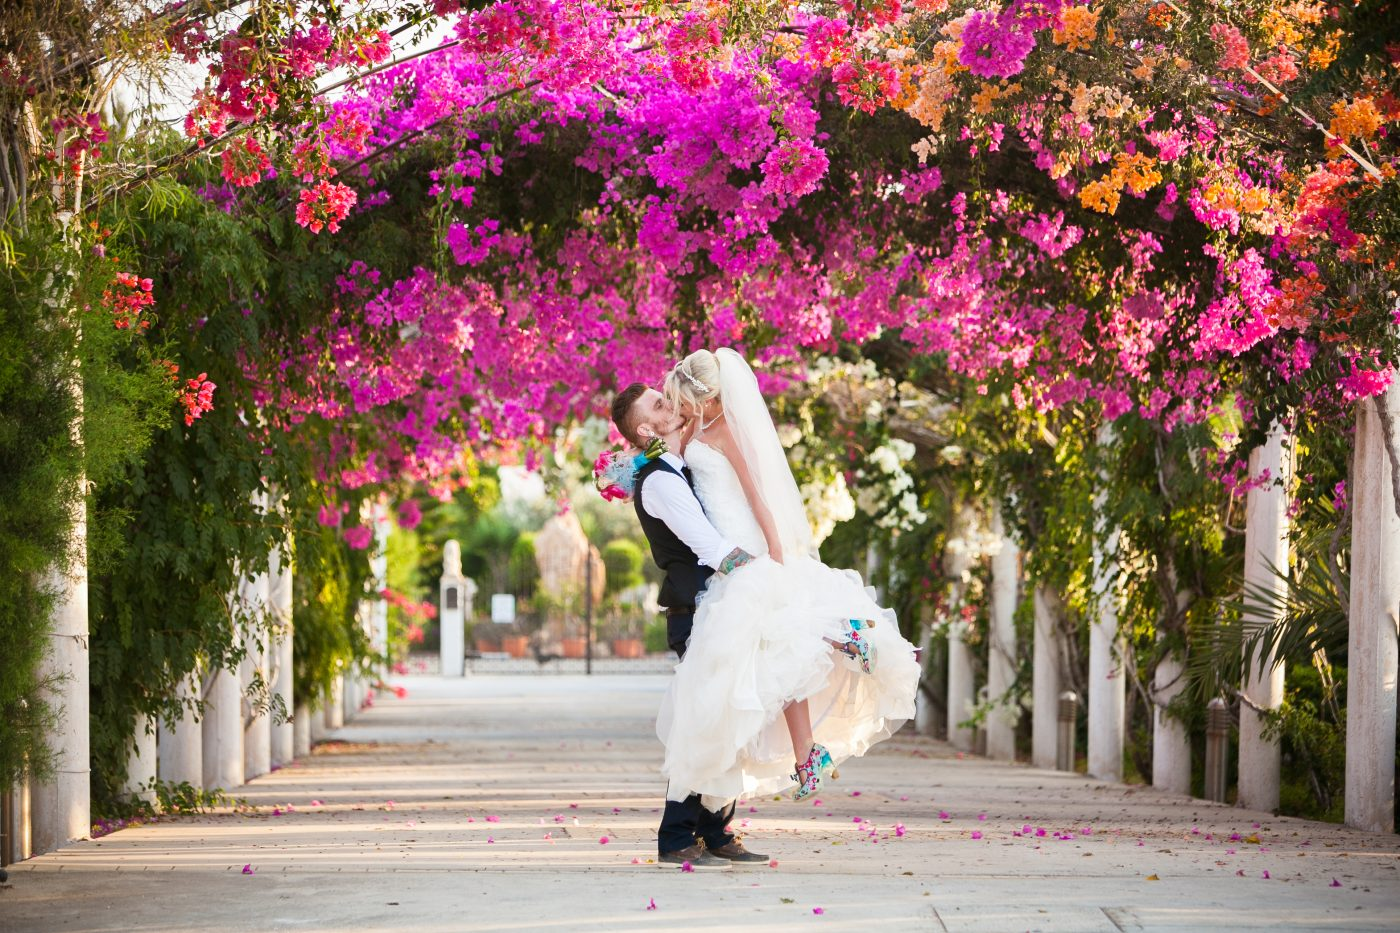 Getting Married in Cyprus 1